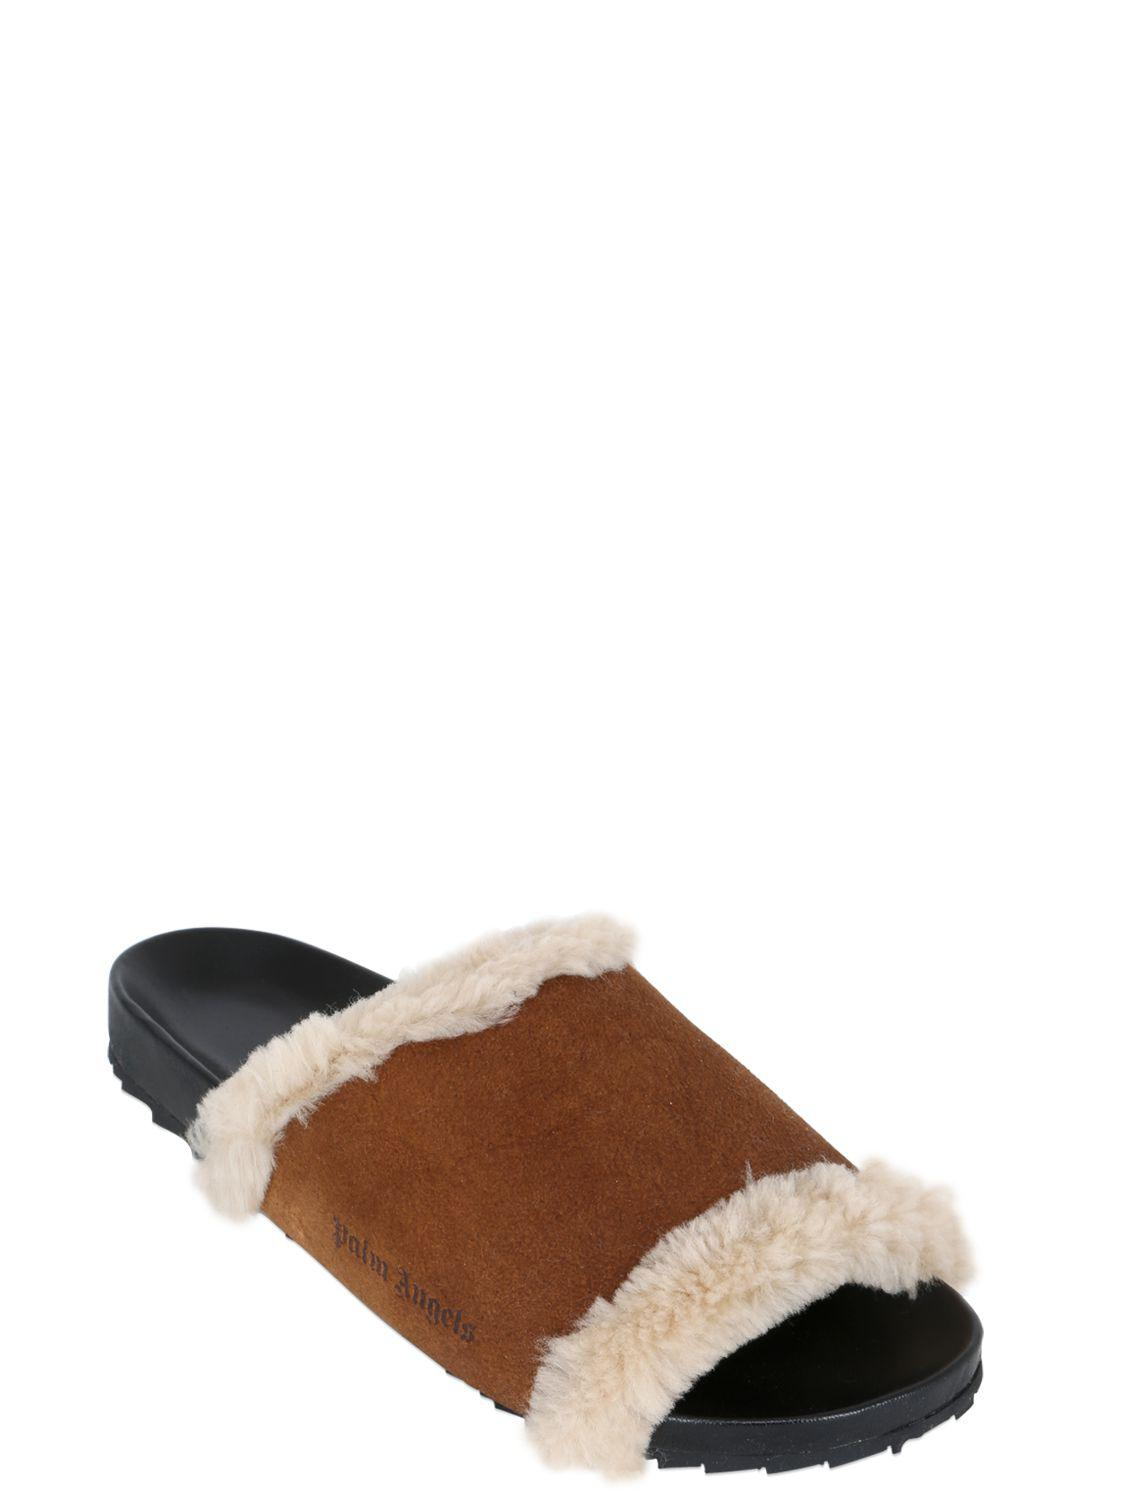 Palm Angels SHEARLING SLIDE SANDALS aNm7t